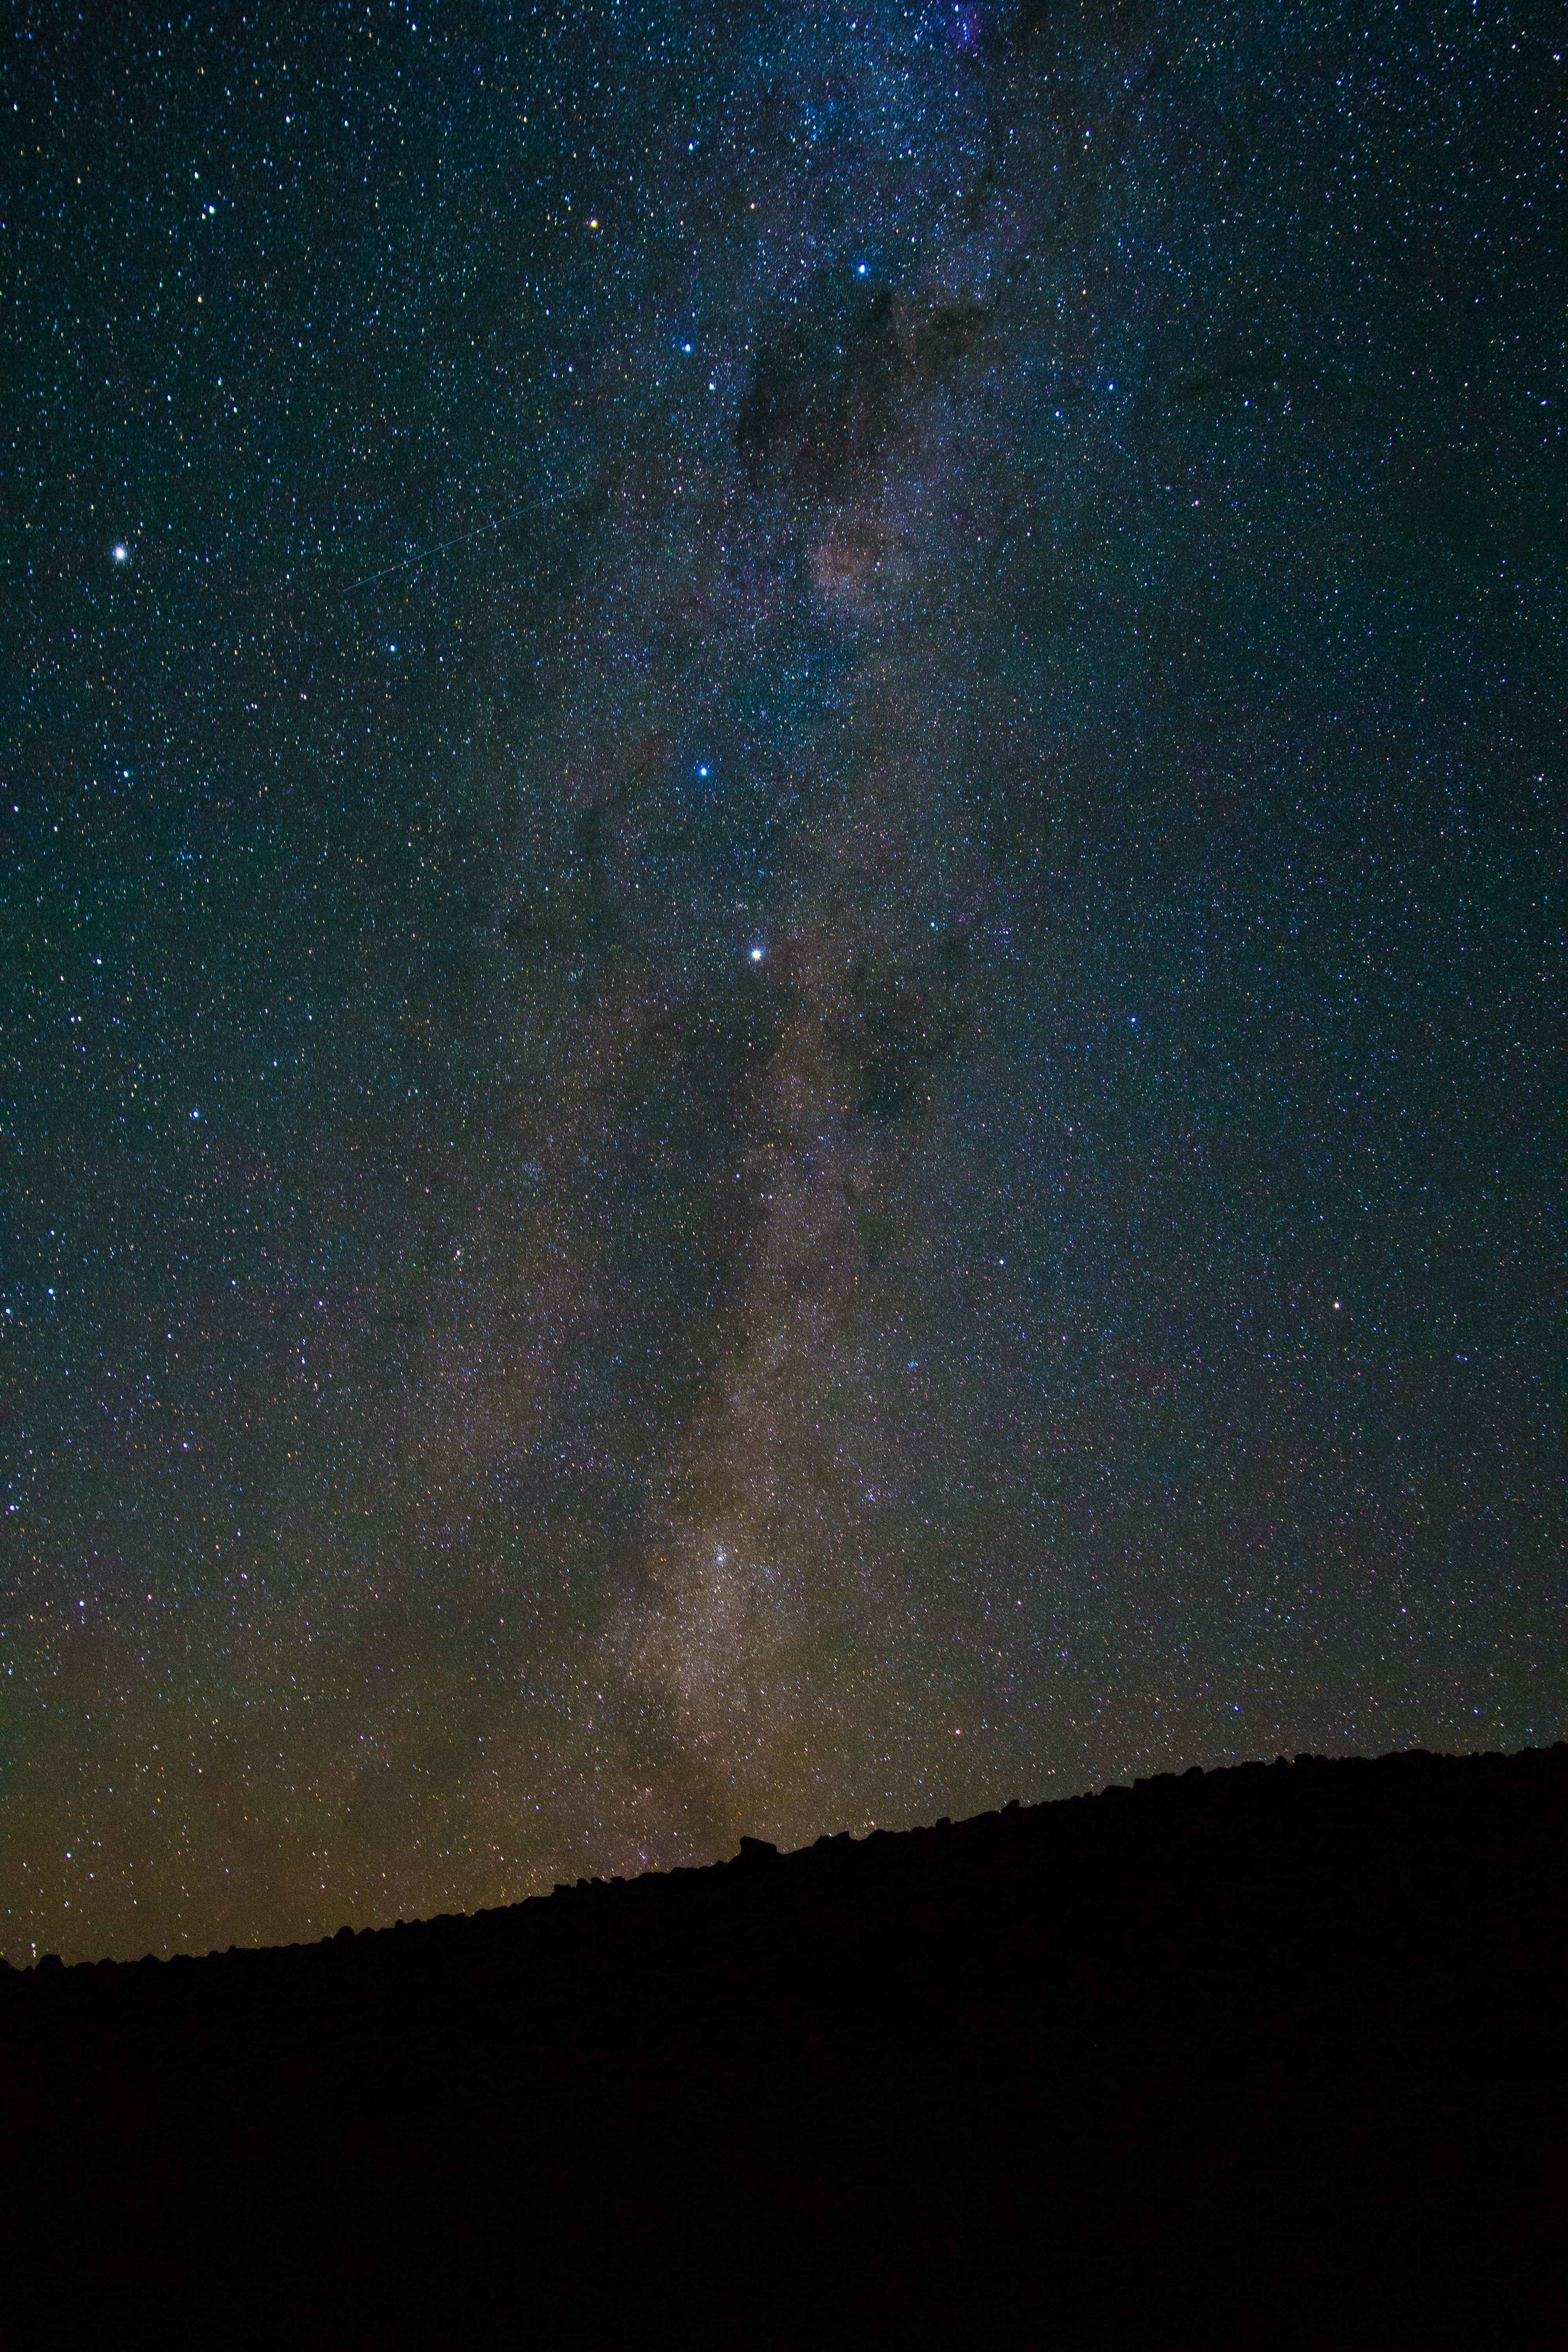 Milky Way Shot from High Camp on Volcán Maipo, Argentina/Chile - 12,005' (3,659m)